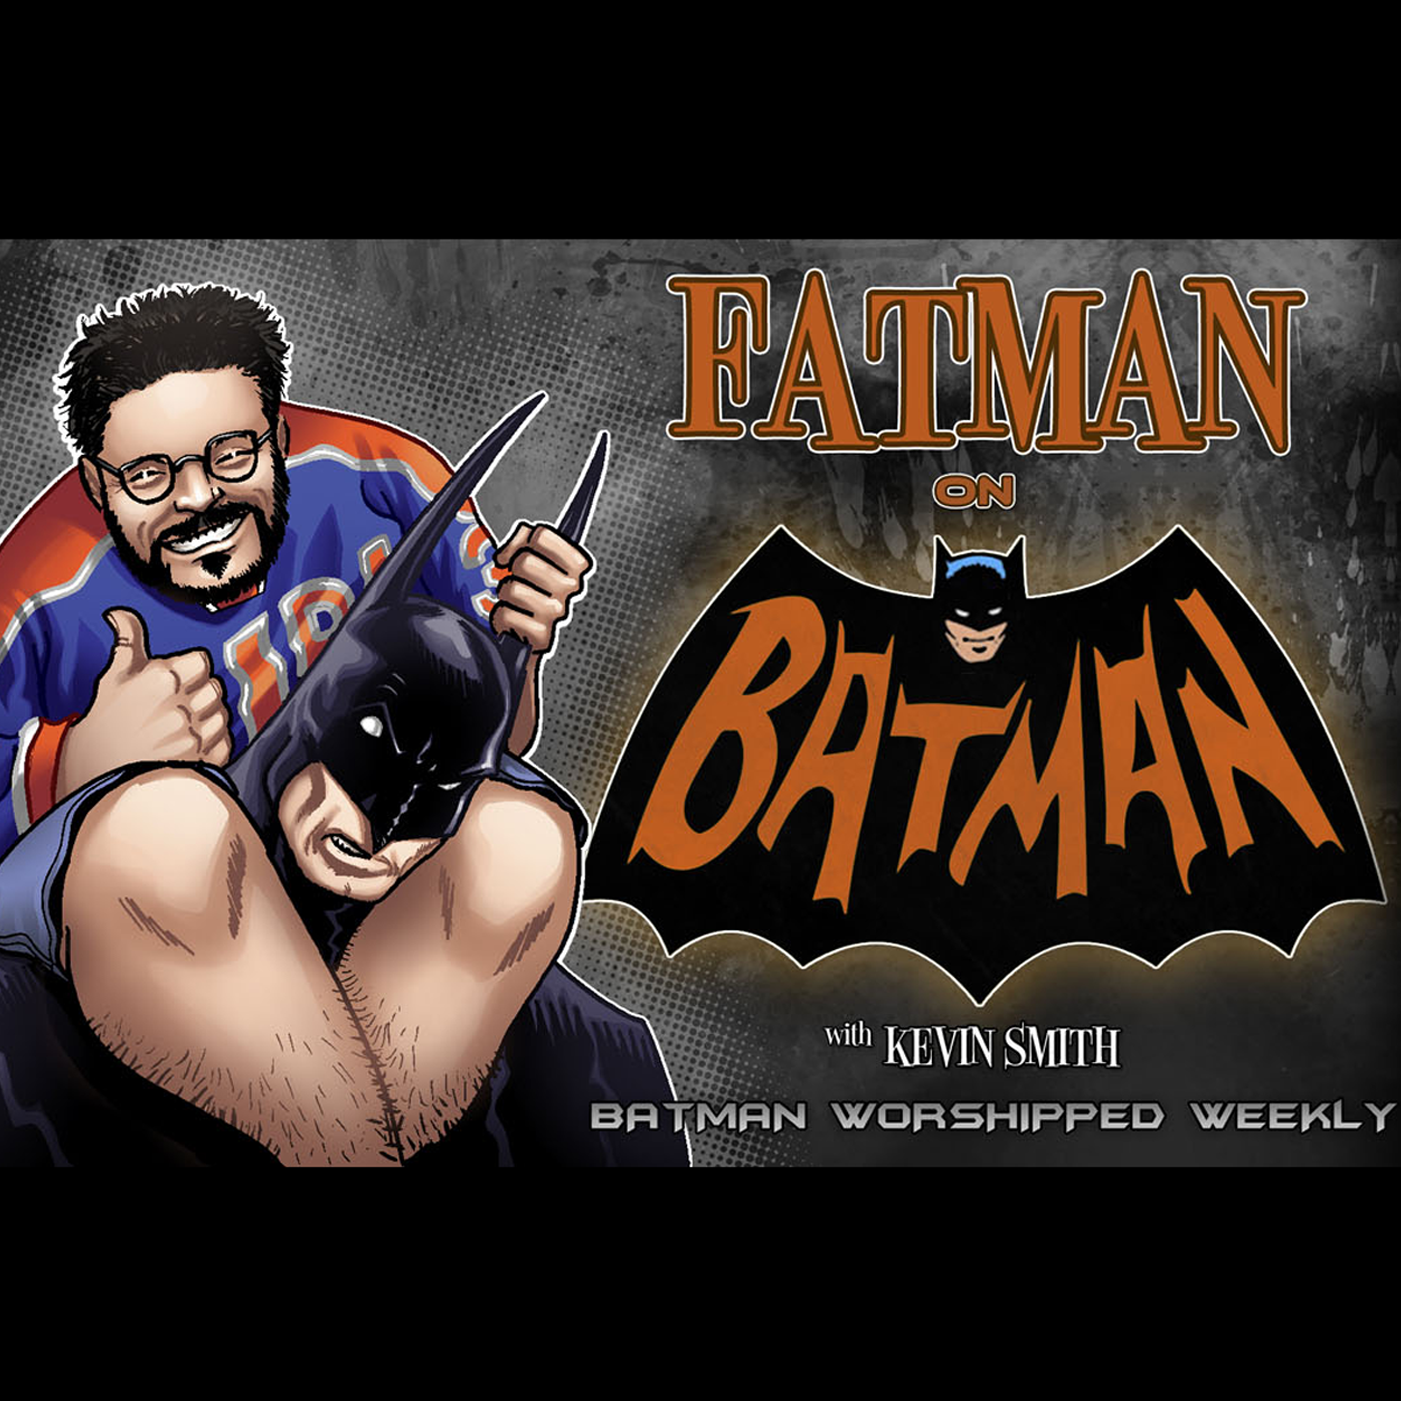 FAT MAN ON BATMAN